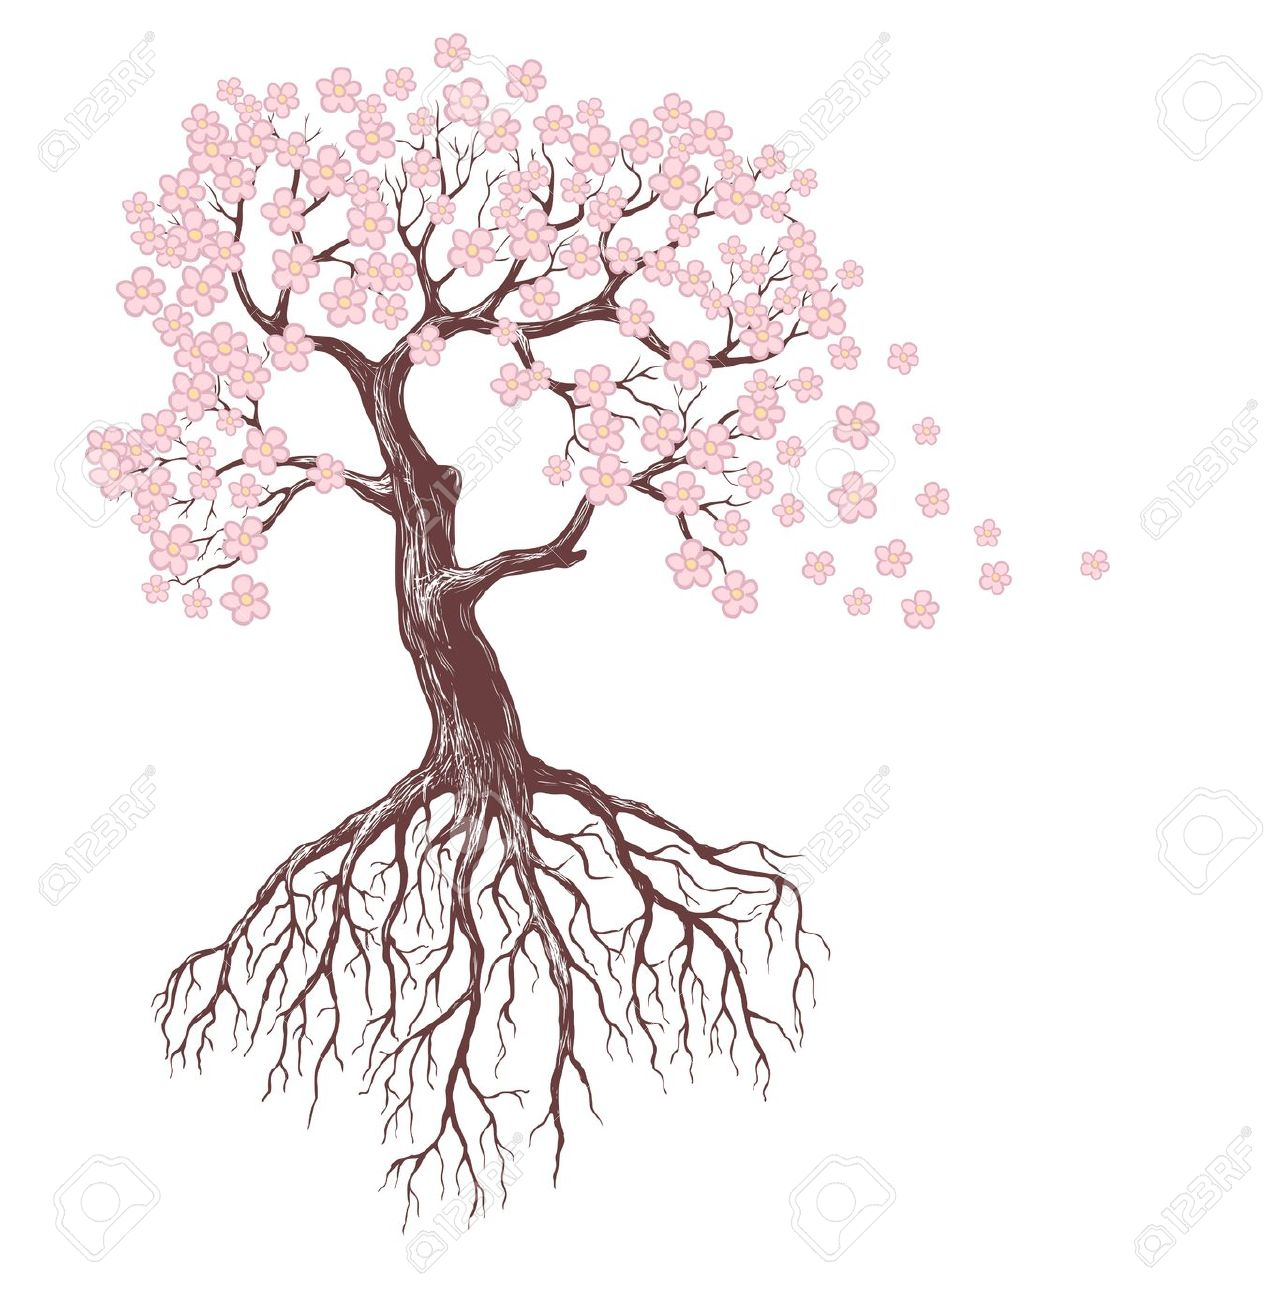 1268x1300 11877645 Spring Tree With Pink Blossoms Stock Vector Tree Root